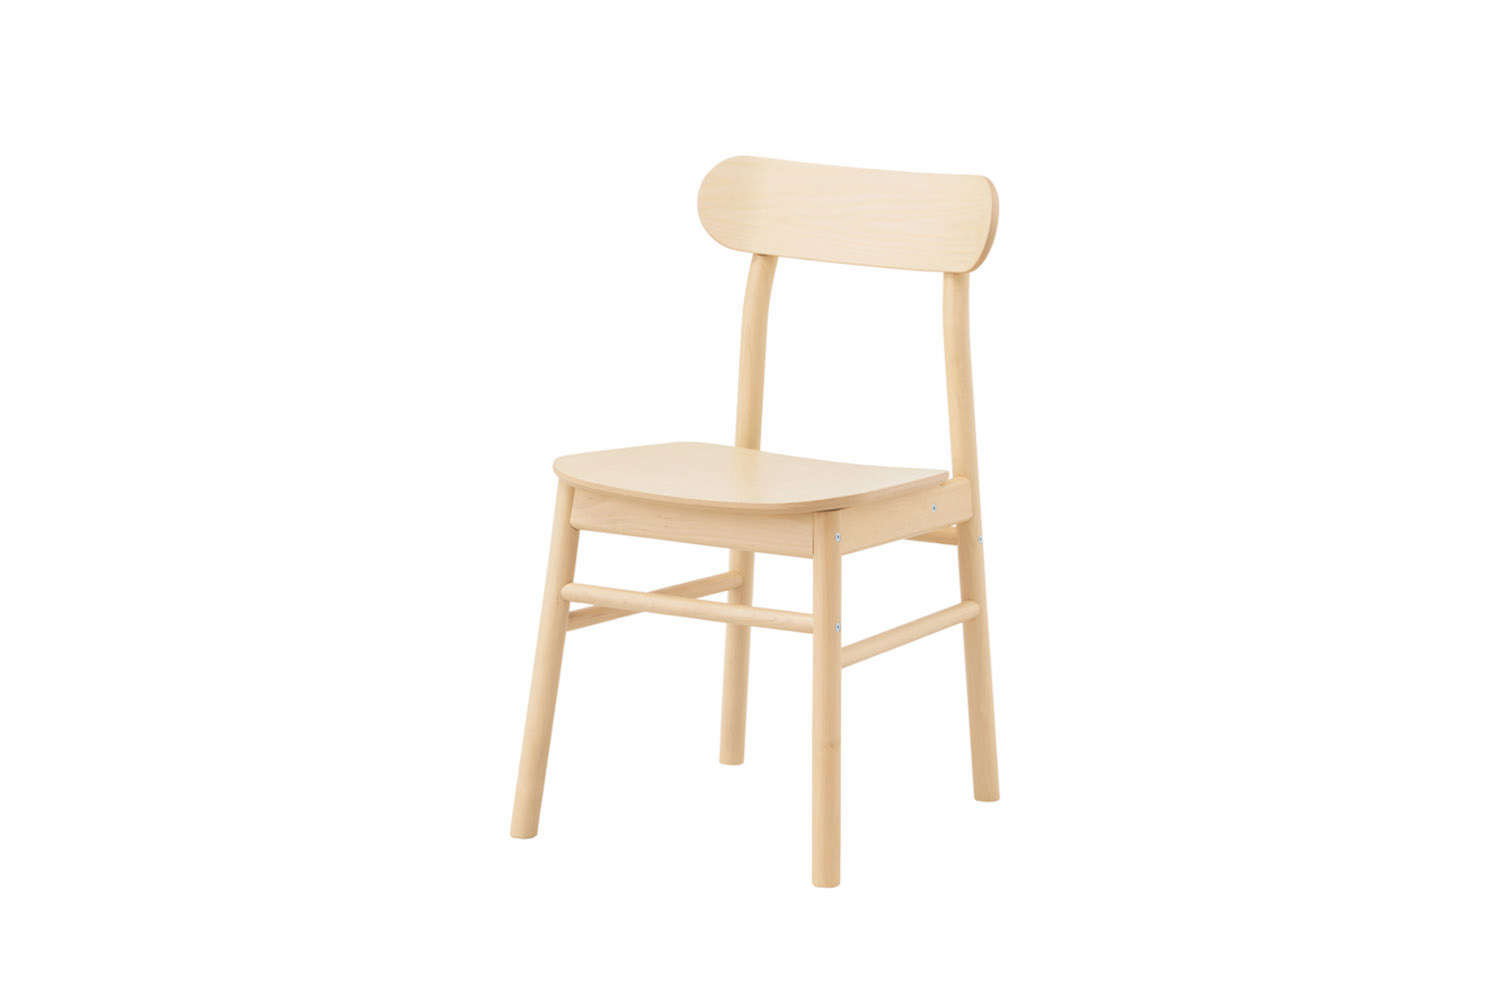 The Ikea Rönninge Chair is $89.